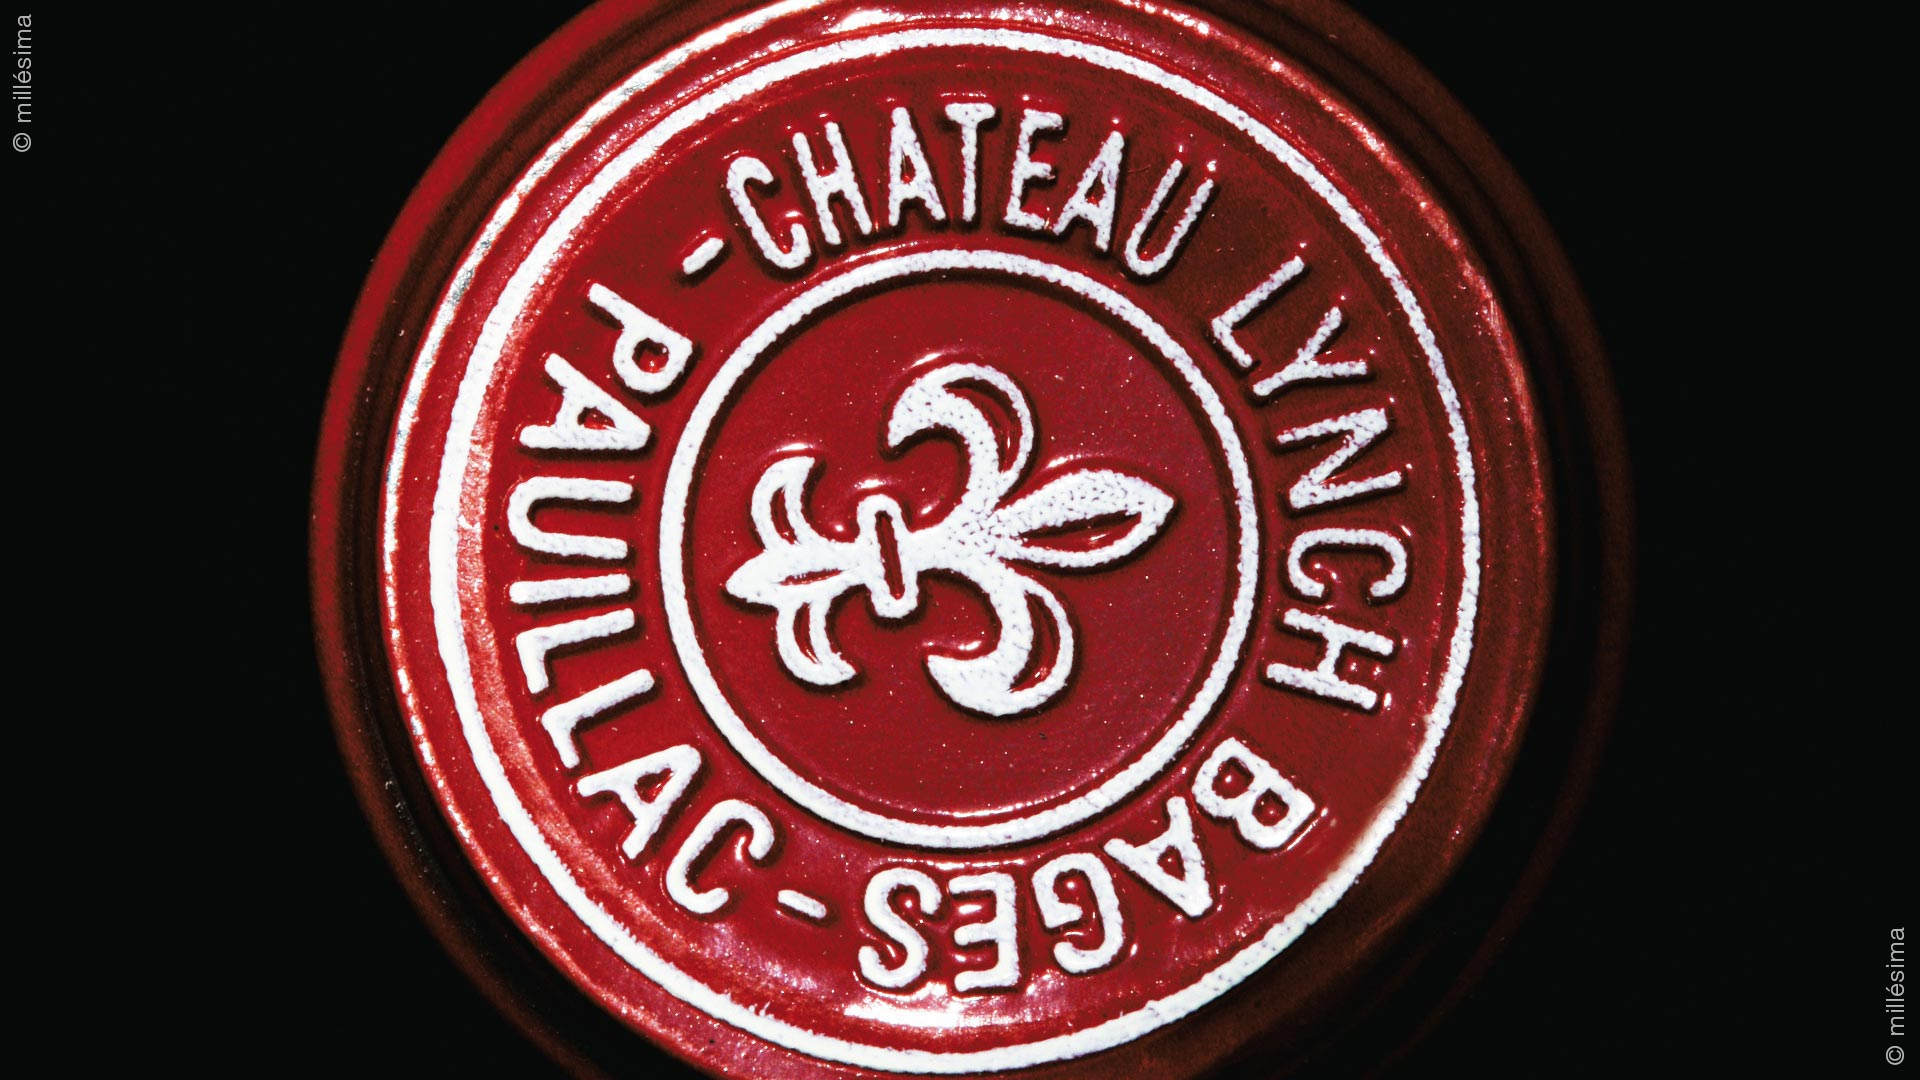 Chateau Lynch-Bages 2004 - 1